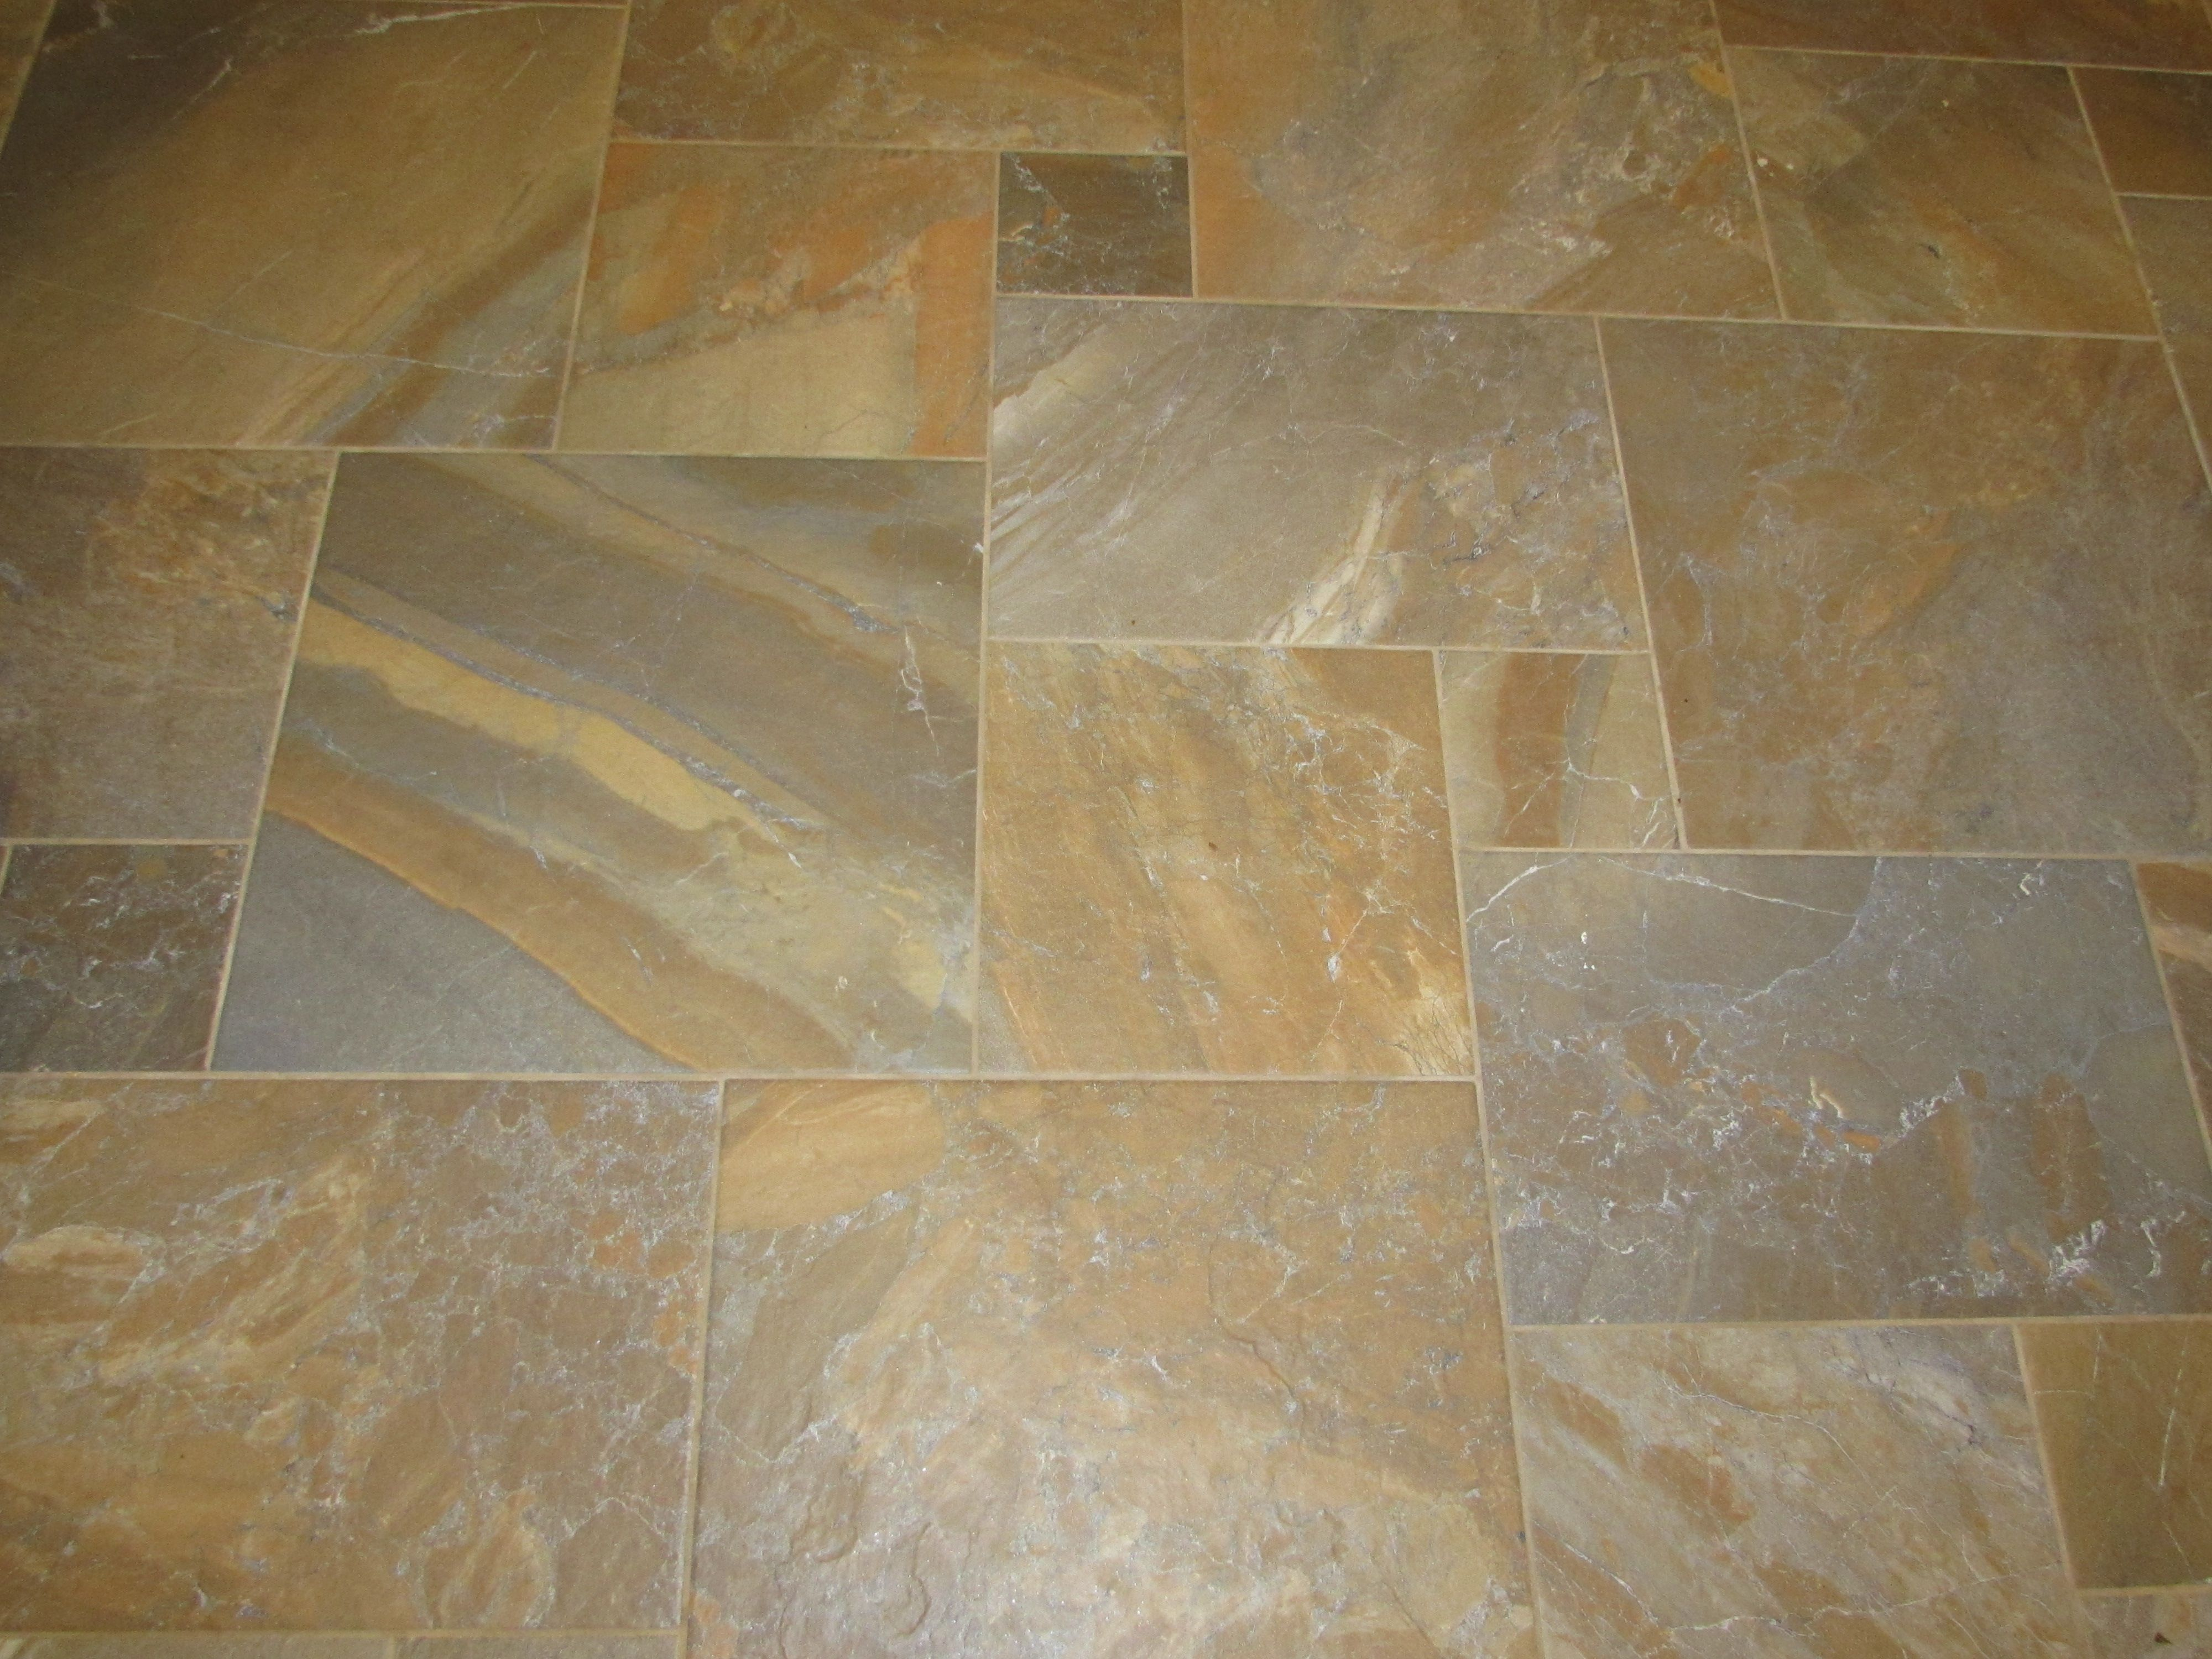 New floor tile daltile ayers rock rustic remnant from home depot new floor tile daltile ayers rock rustic remnant from home depot dailygadgetfo Images